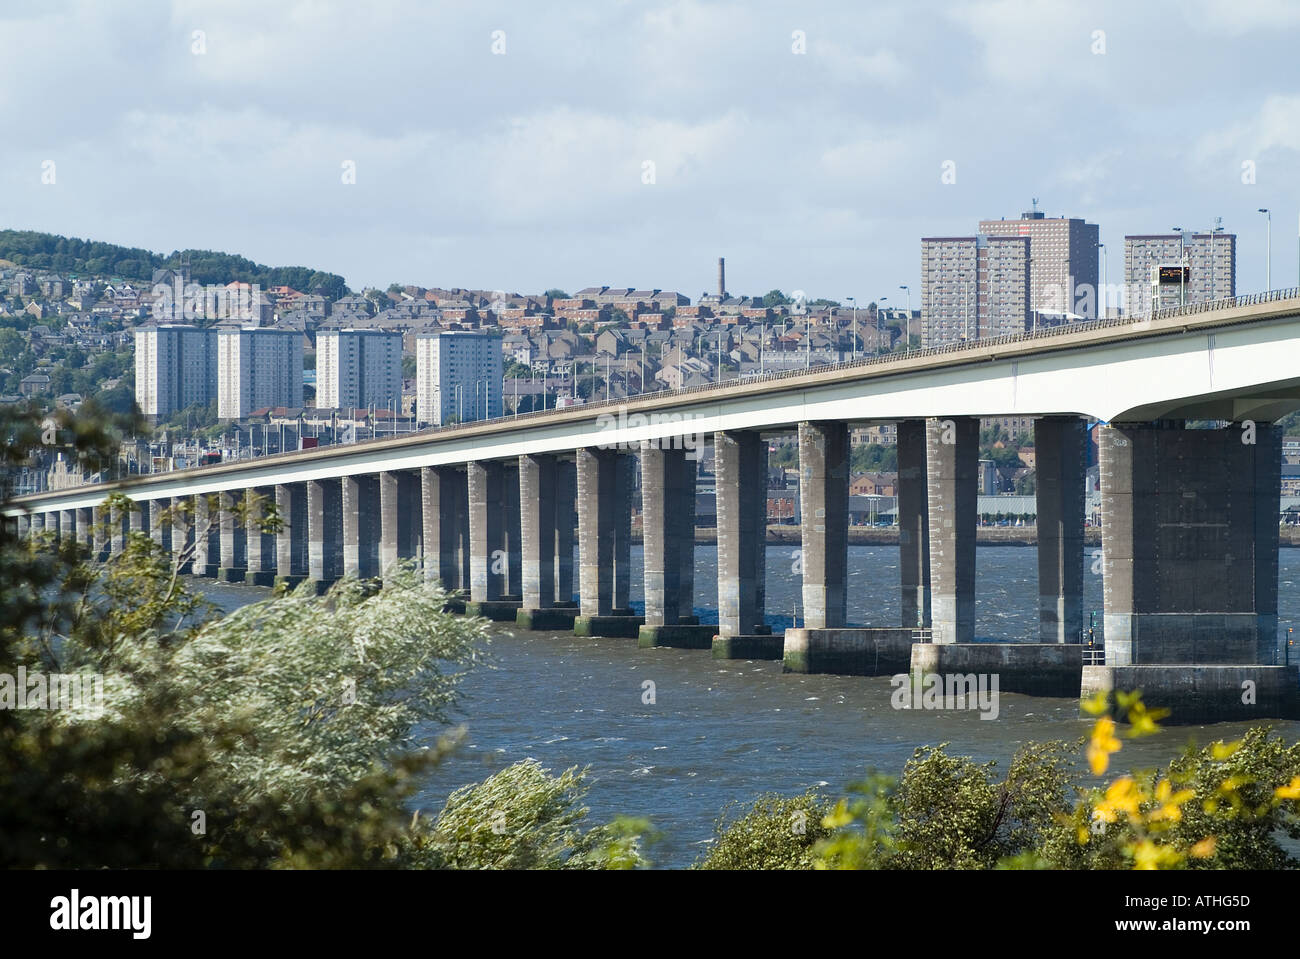 dh Tay Road Bridge DUNDEE ANGUS Bridge crossing the River Tay with city scotland - Stock Image